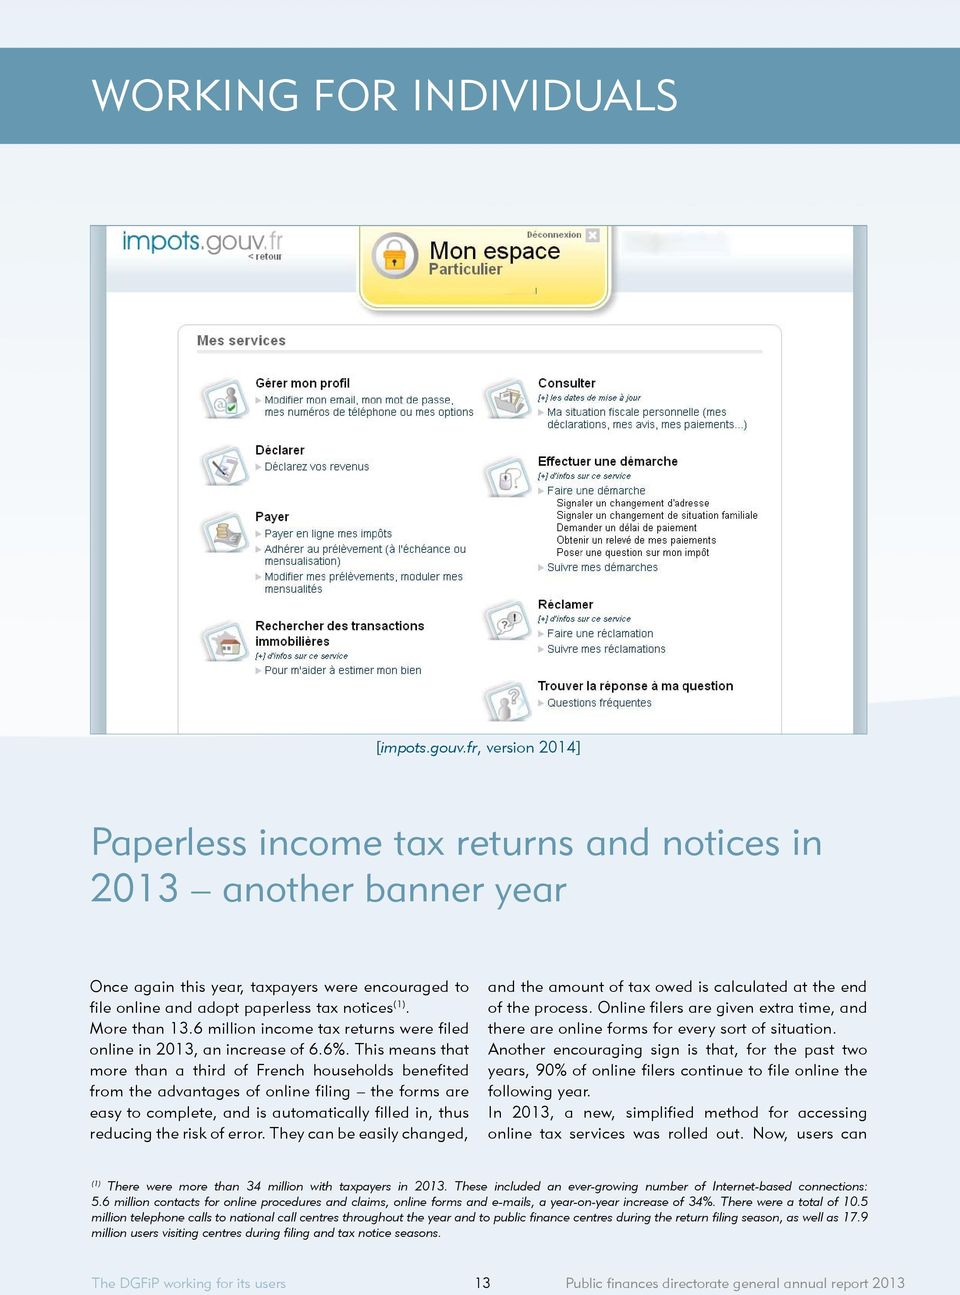 6 million income tax returns were filed online in 2013, an increase of 6.6%.